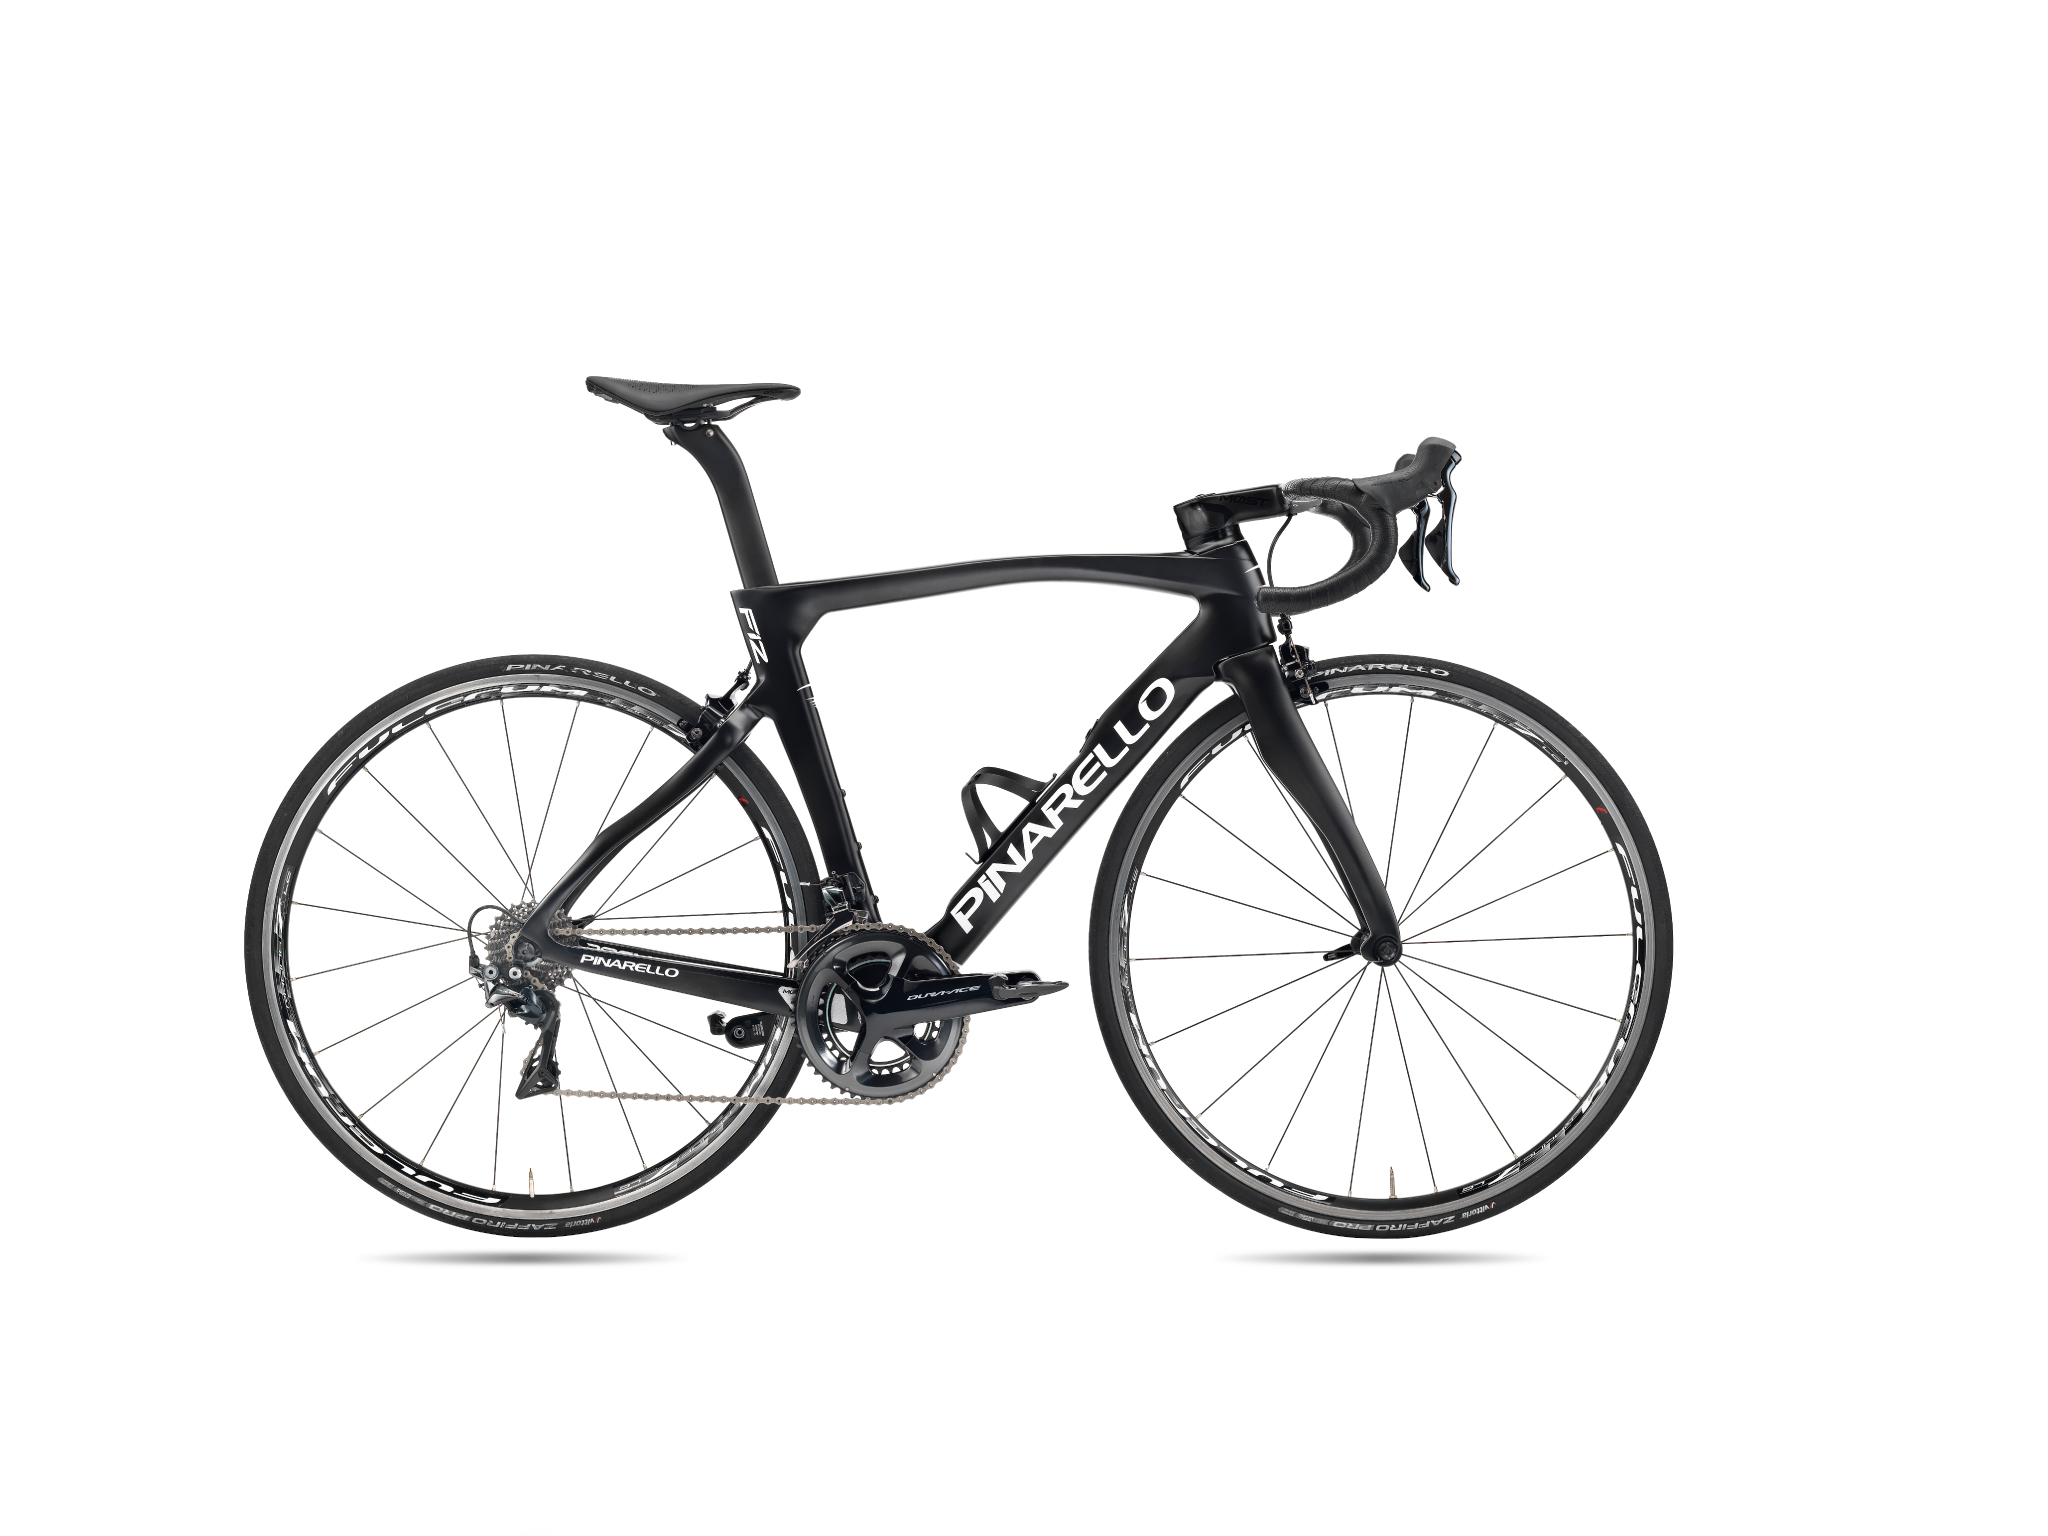 Pinarello Dogma F12 Disk Frame in Matt Black £5,200.00